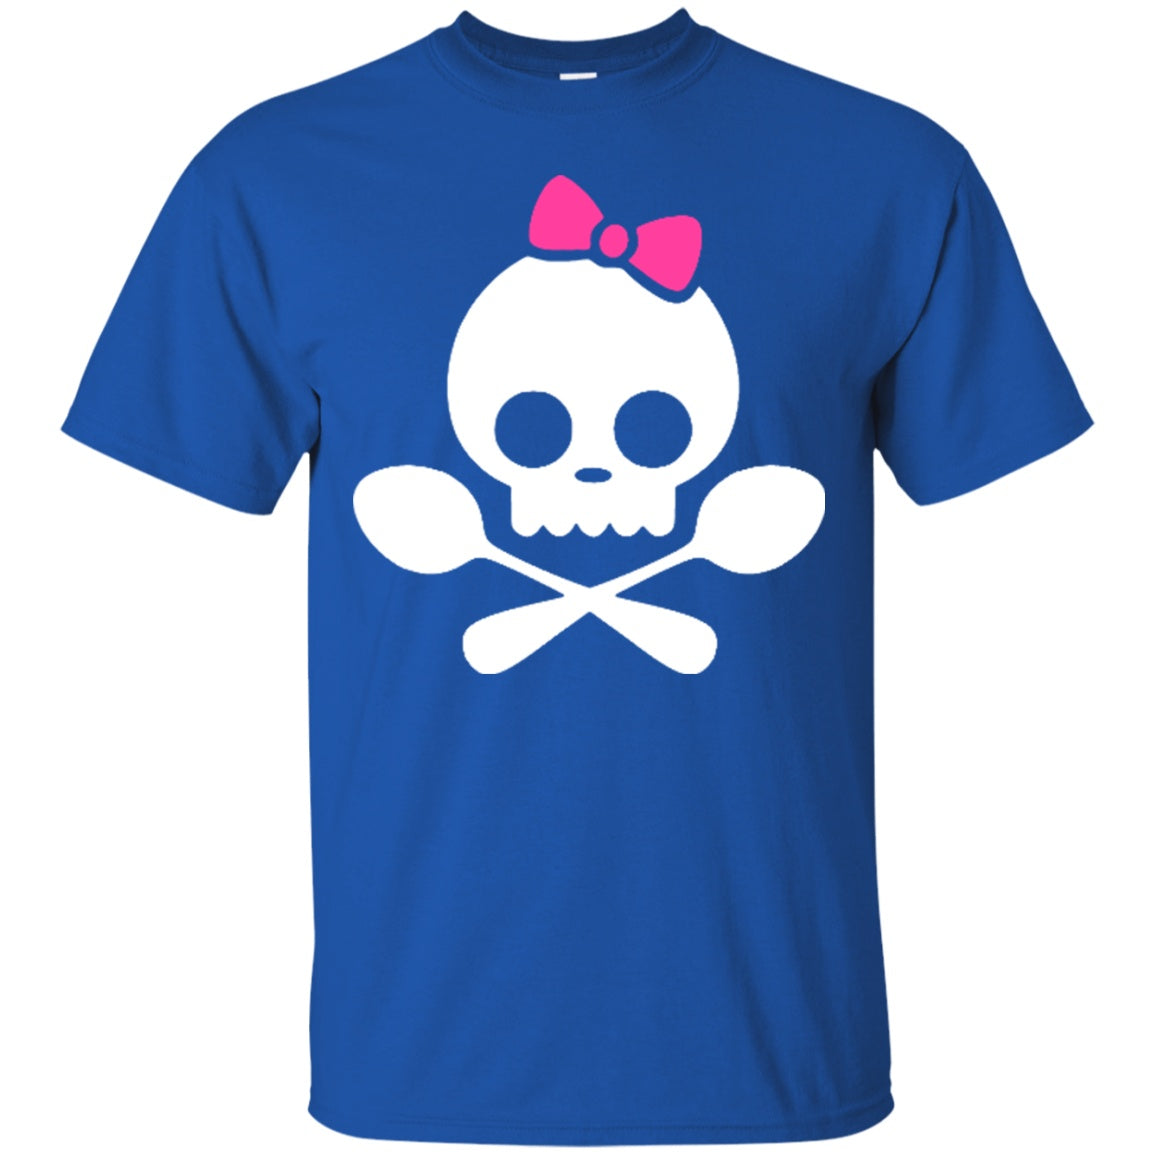 Spoonie Skull Pink Bow Unisex Shirt - The Unchargeables